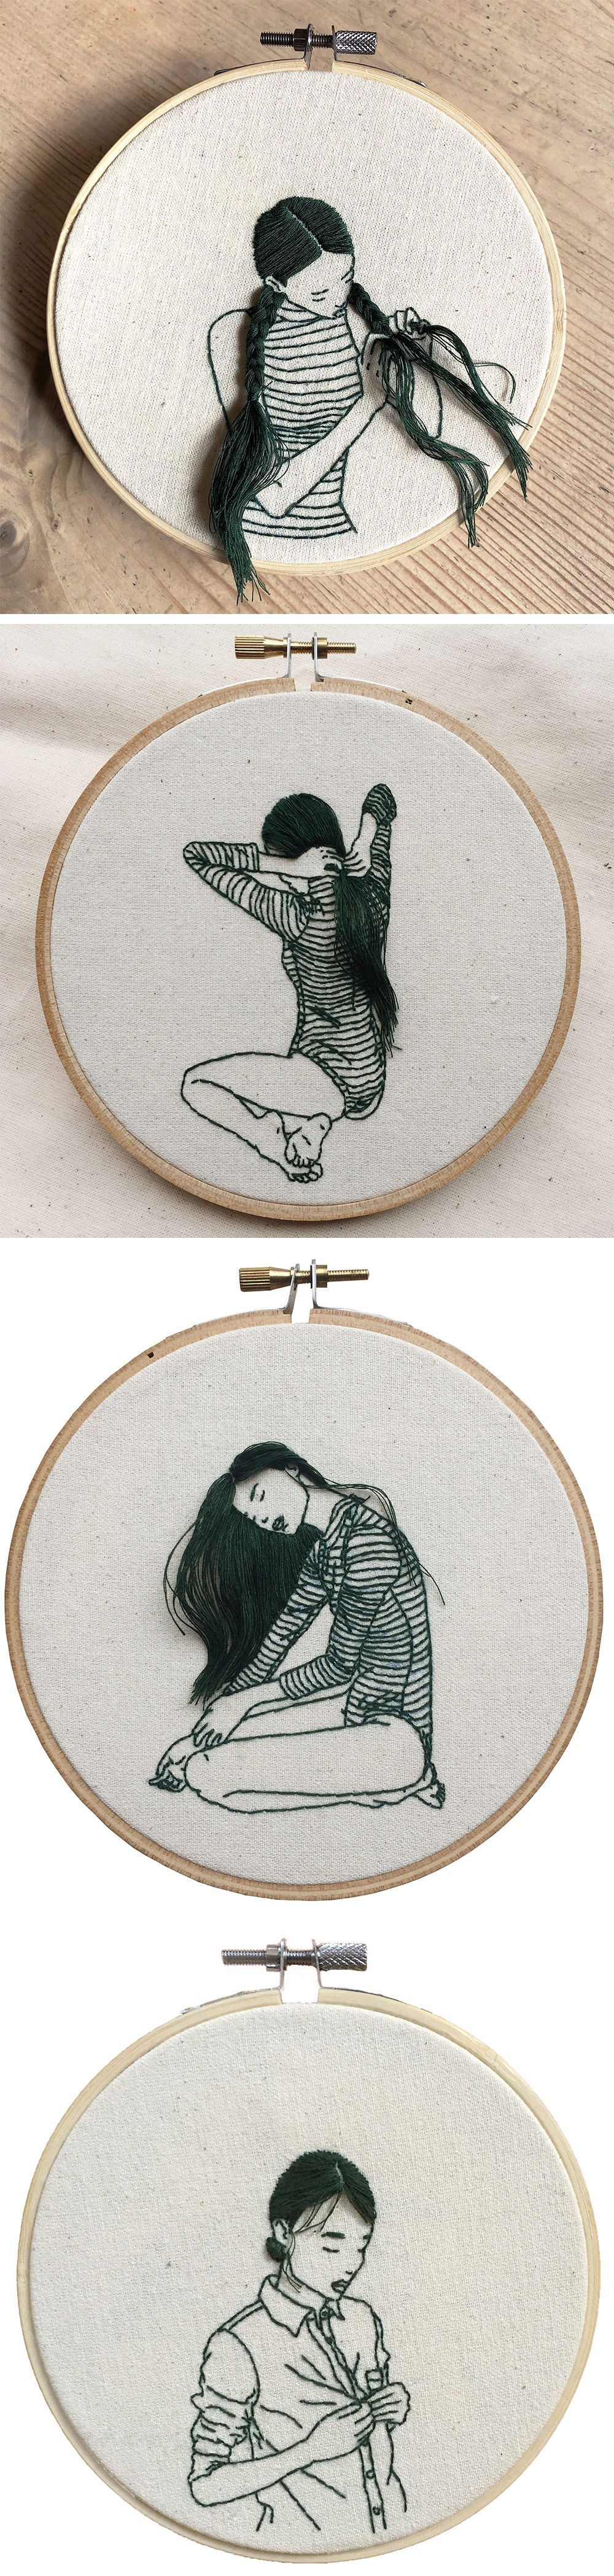 Hand-Sewn Portraits by Sheena Liam Capture Quiet Moments of Self Care #textiledesign